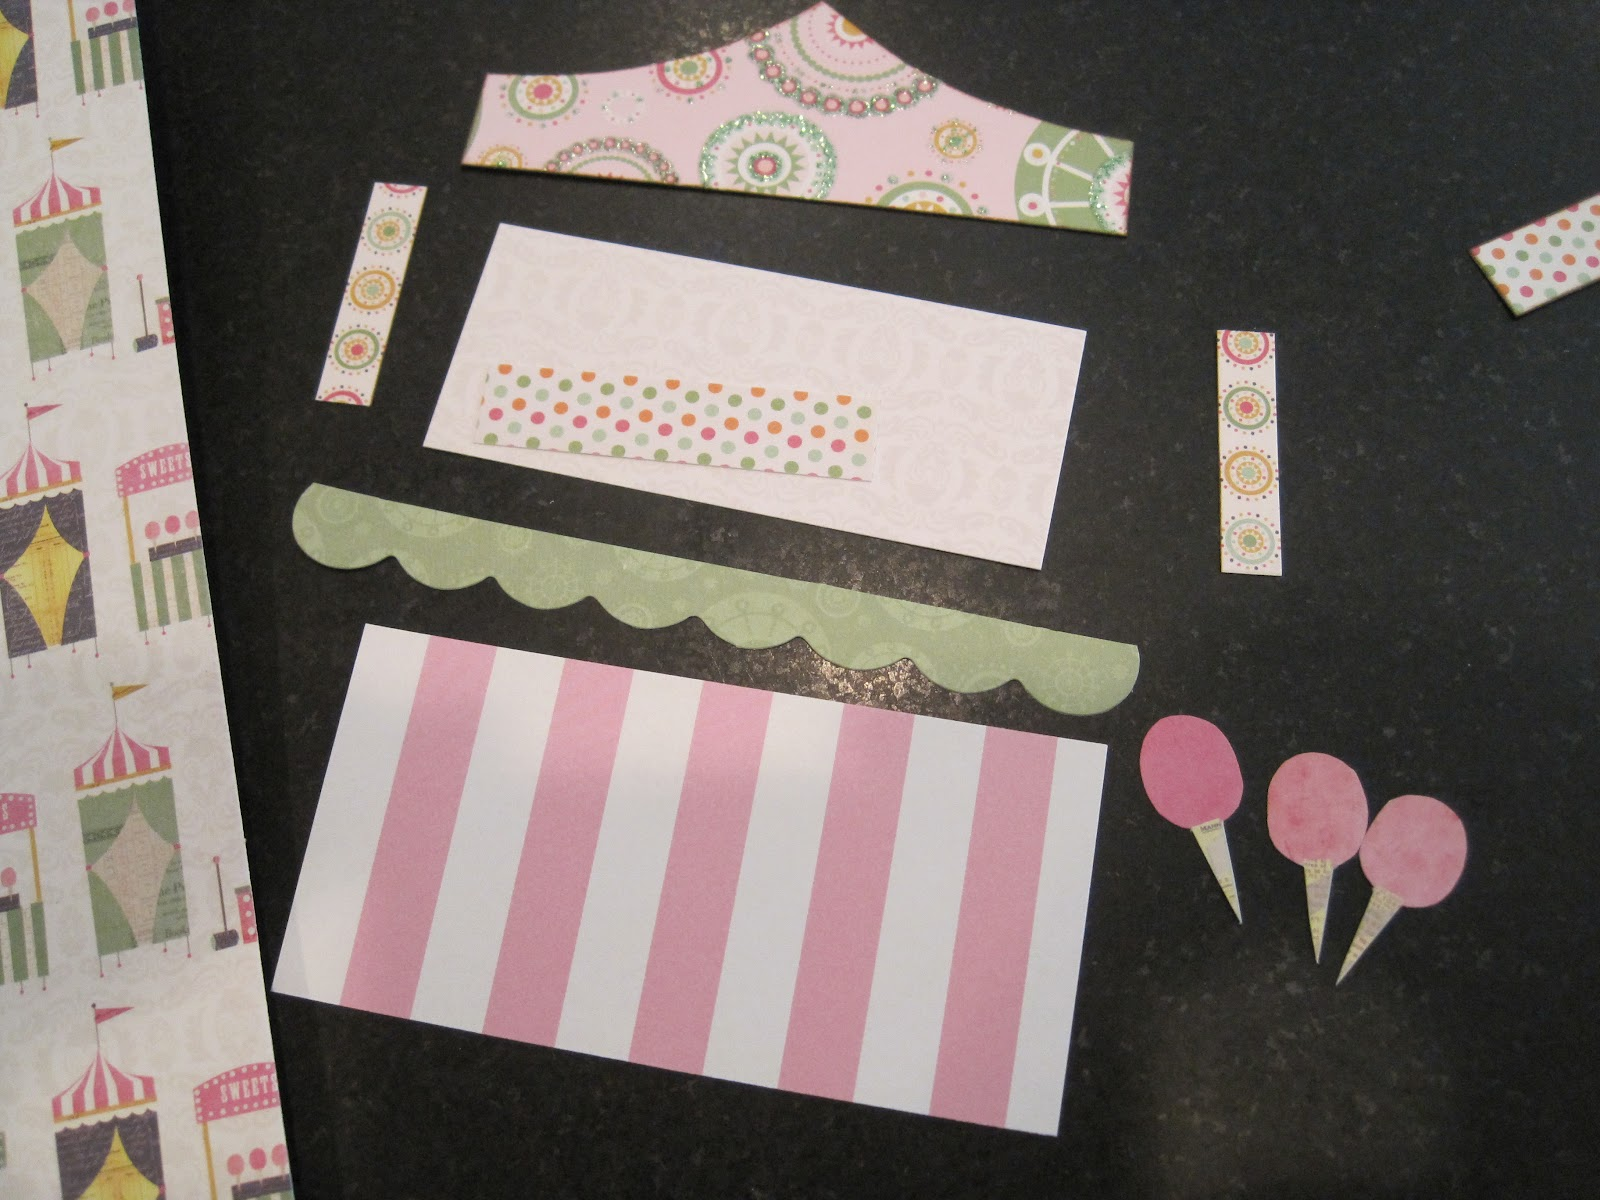 I Wanted The Front To Be A Carnival Booth That Would Open Up In Middle Started By Cutting Out All Shapes For